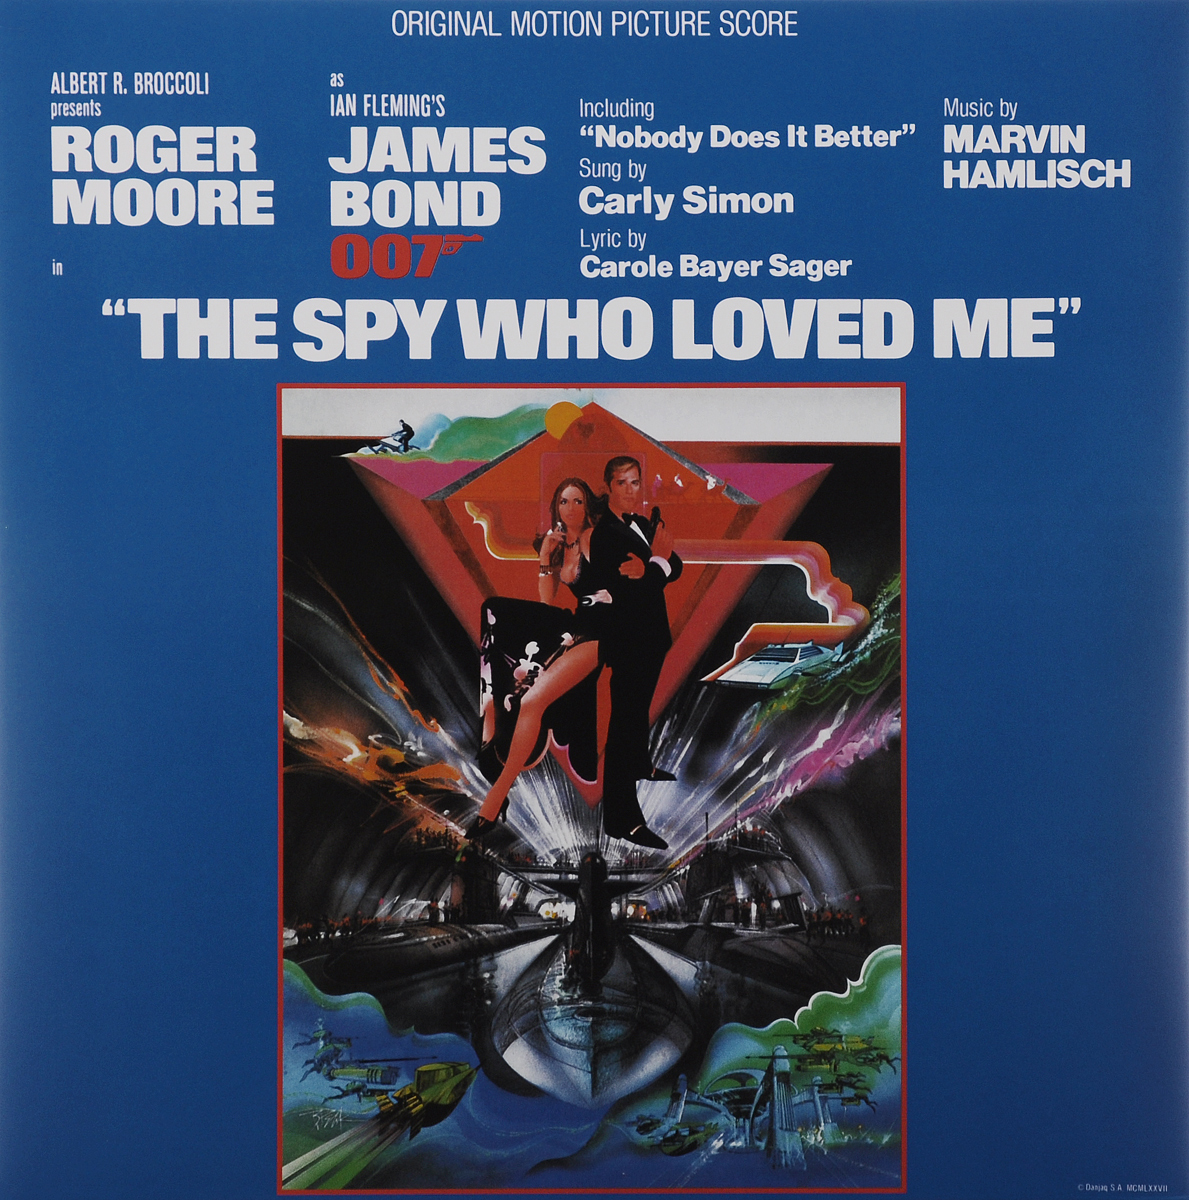 The Spy Who Loved Me. Original Motion Picture Score (LP) the spy who loved me original motion picture score lp